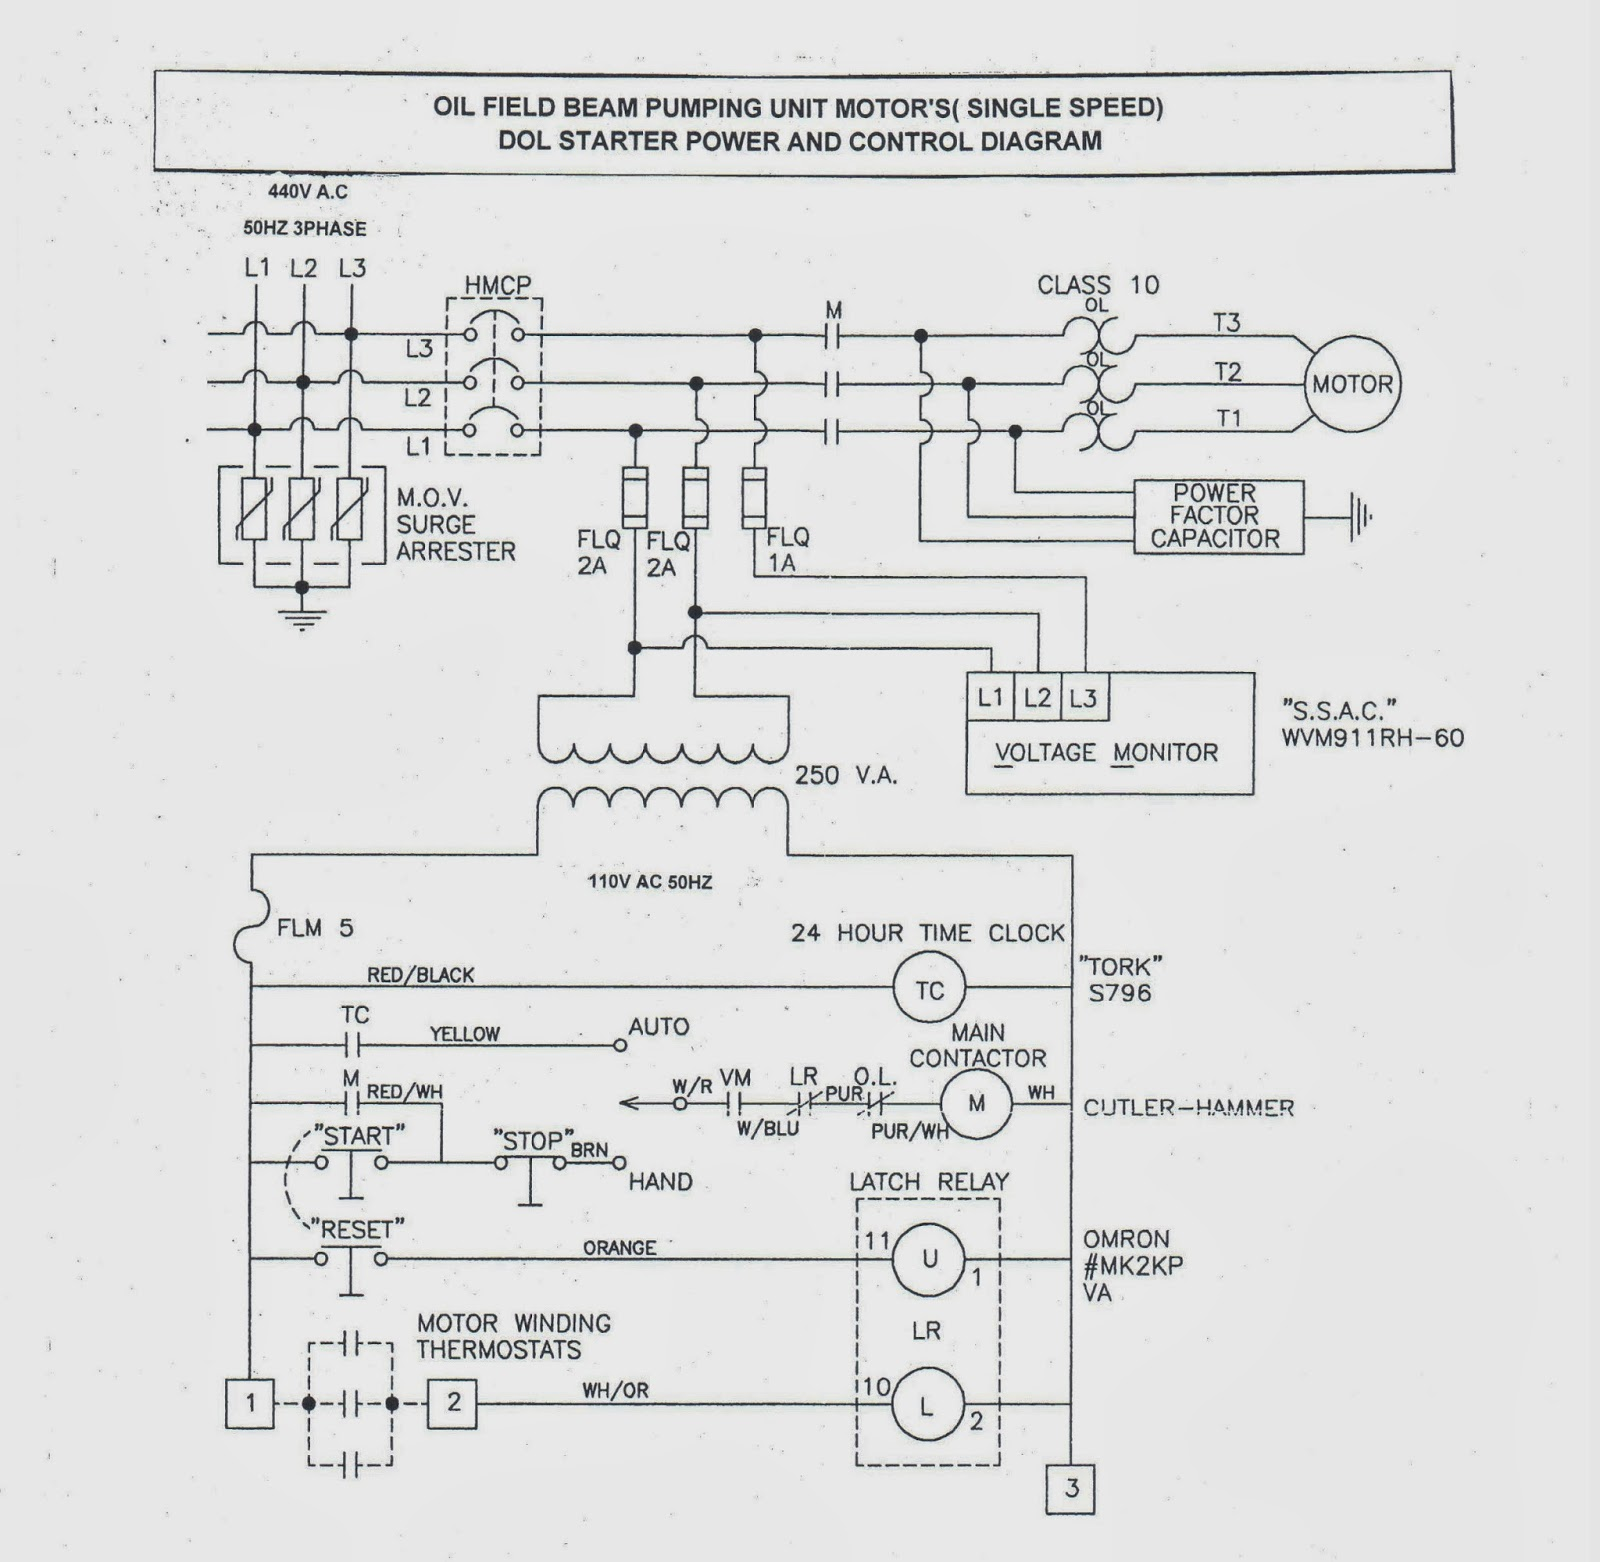 small resolution of oil field beam pumping unit motor dol starter power and control diagram